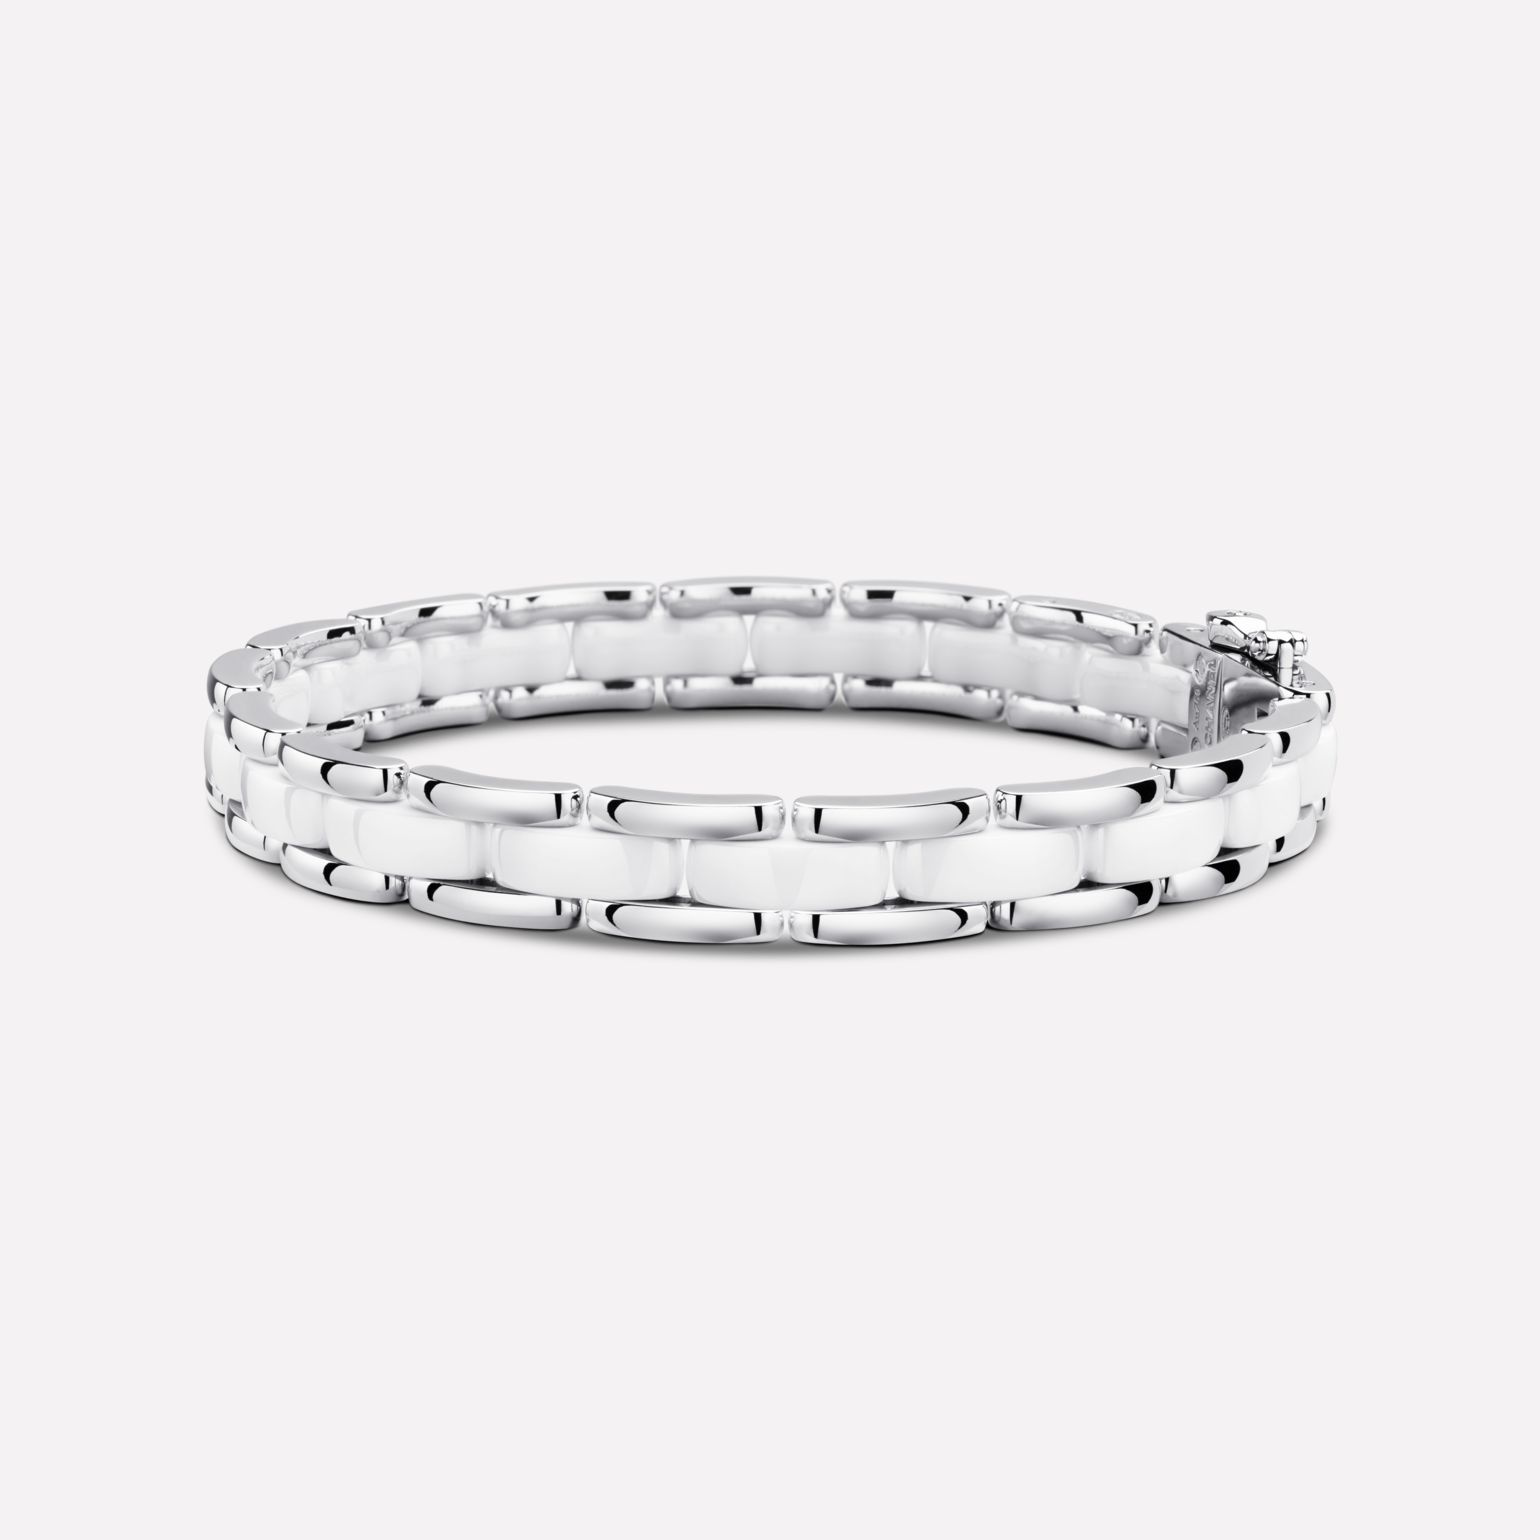 Ultra bracelet Ultra bracelet, in white ceramic and 18K white gold